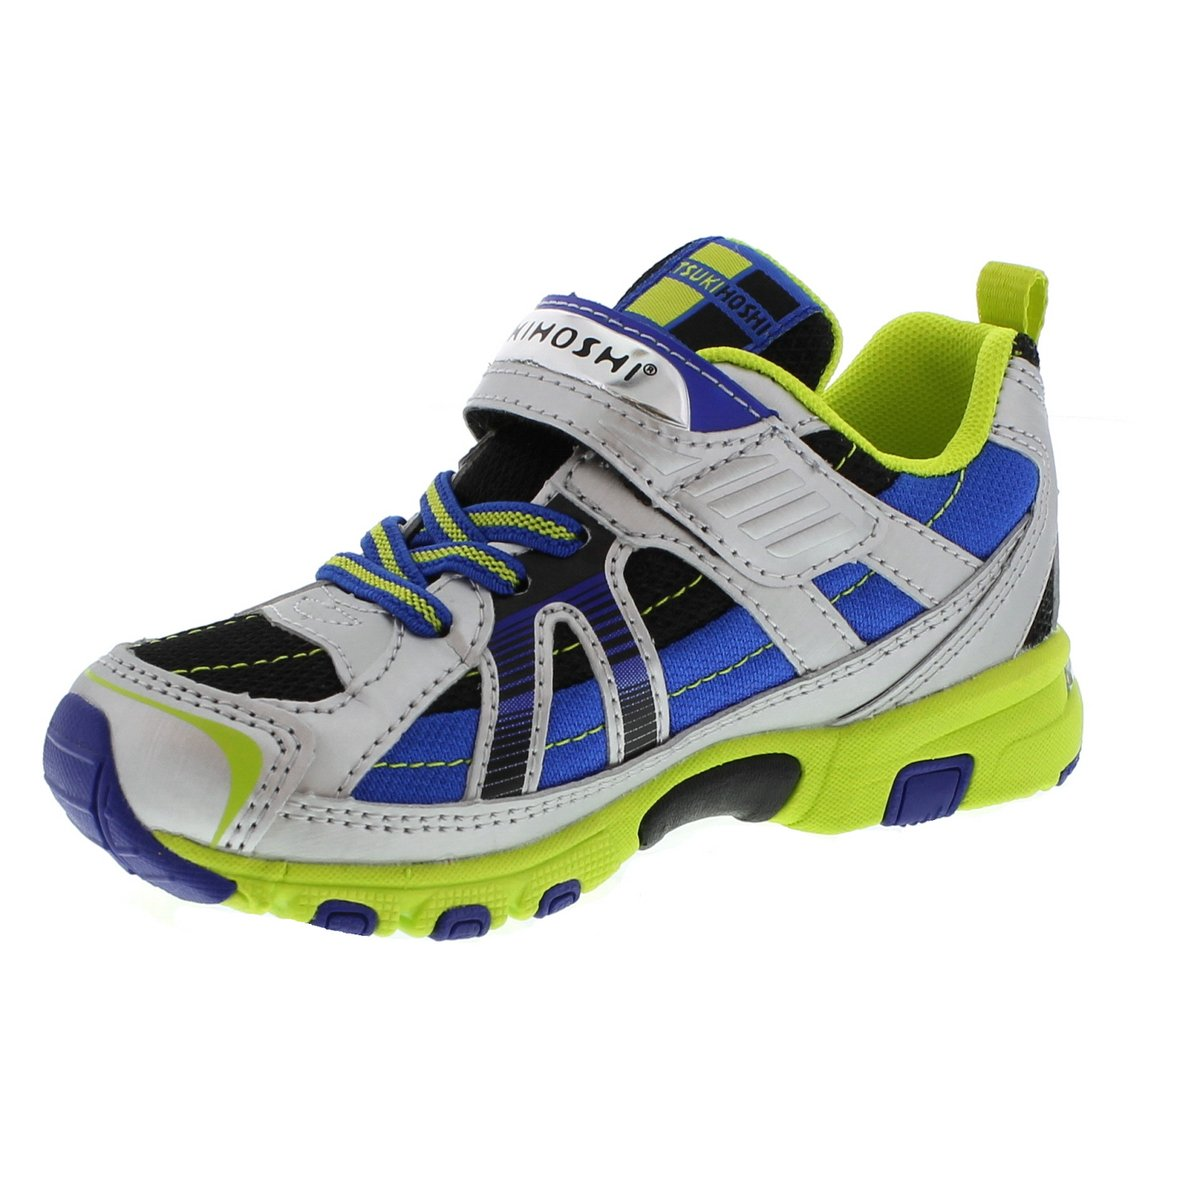 Child Tsukihoshi Storm Sneaker in Silver/Lime from the front view